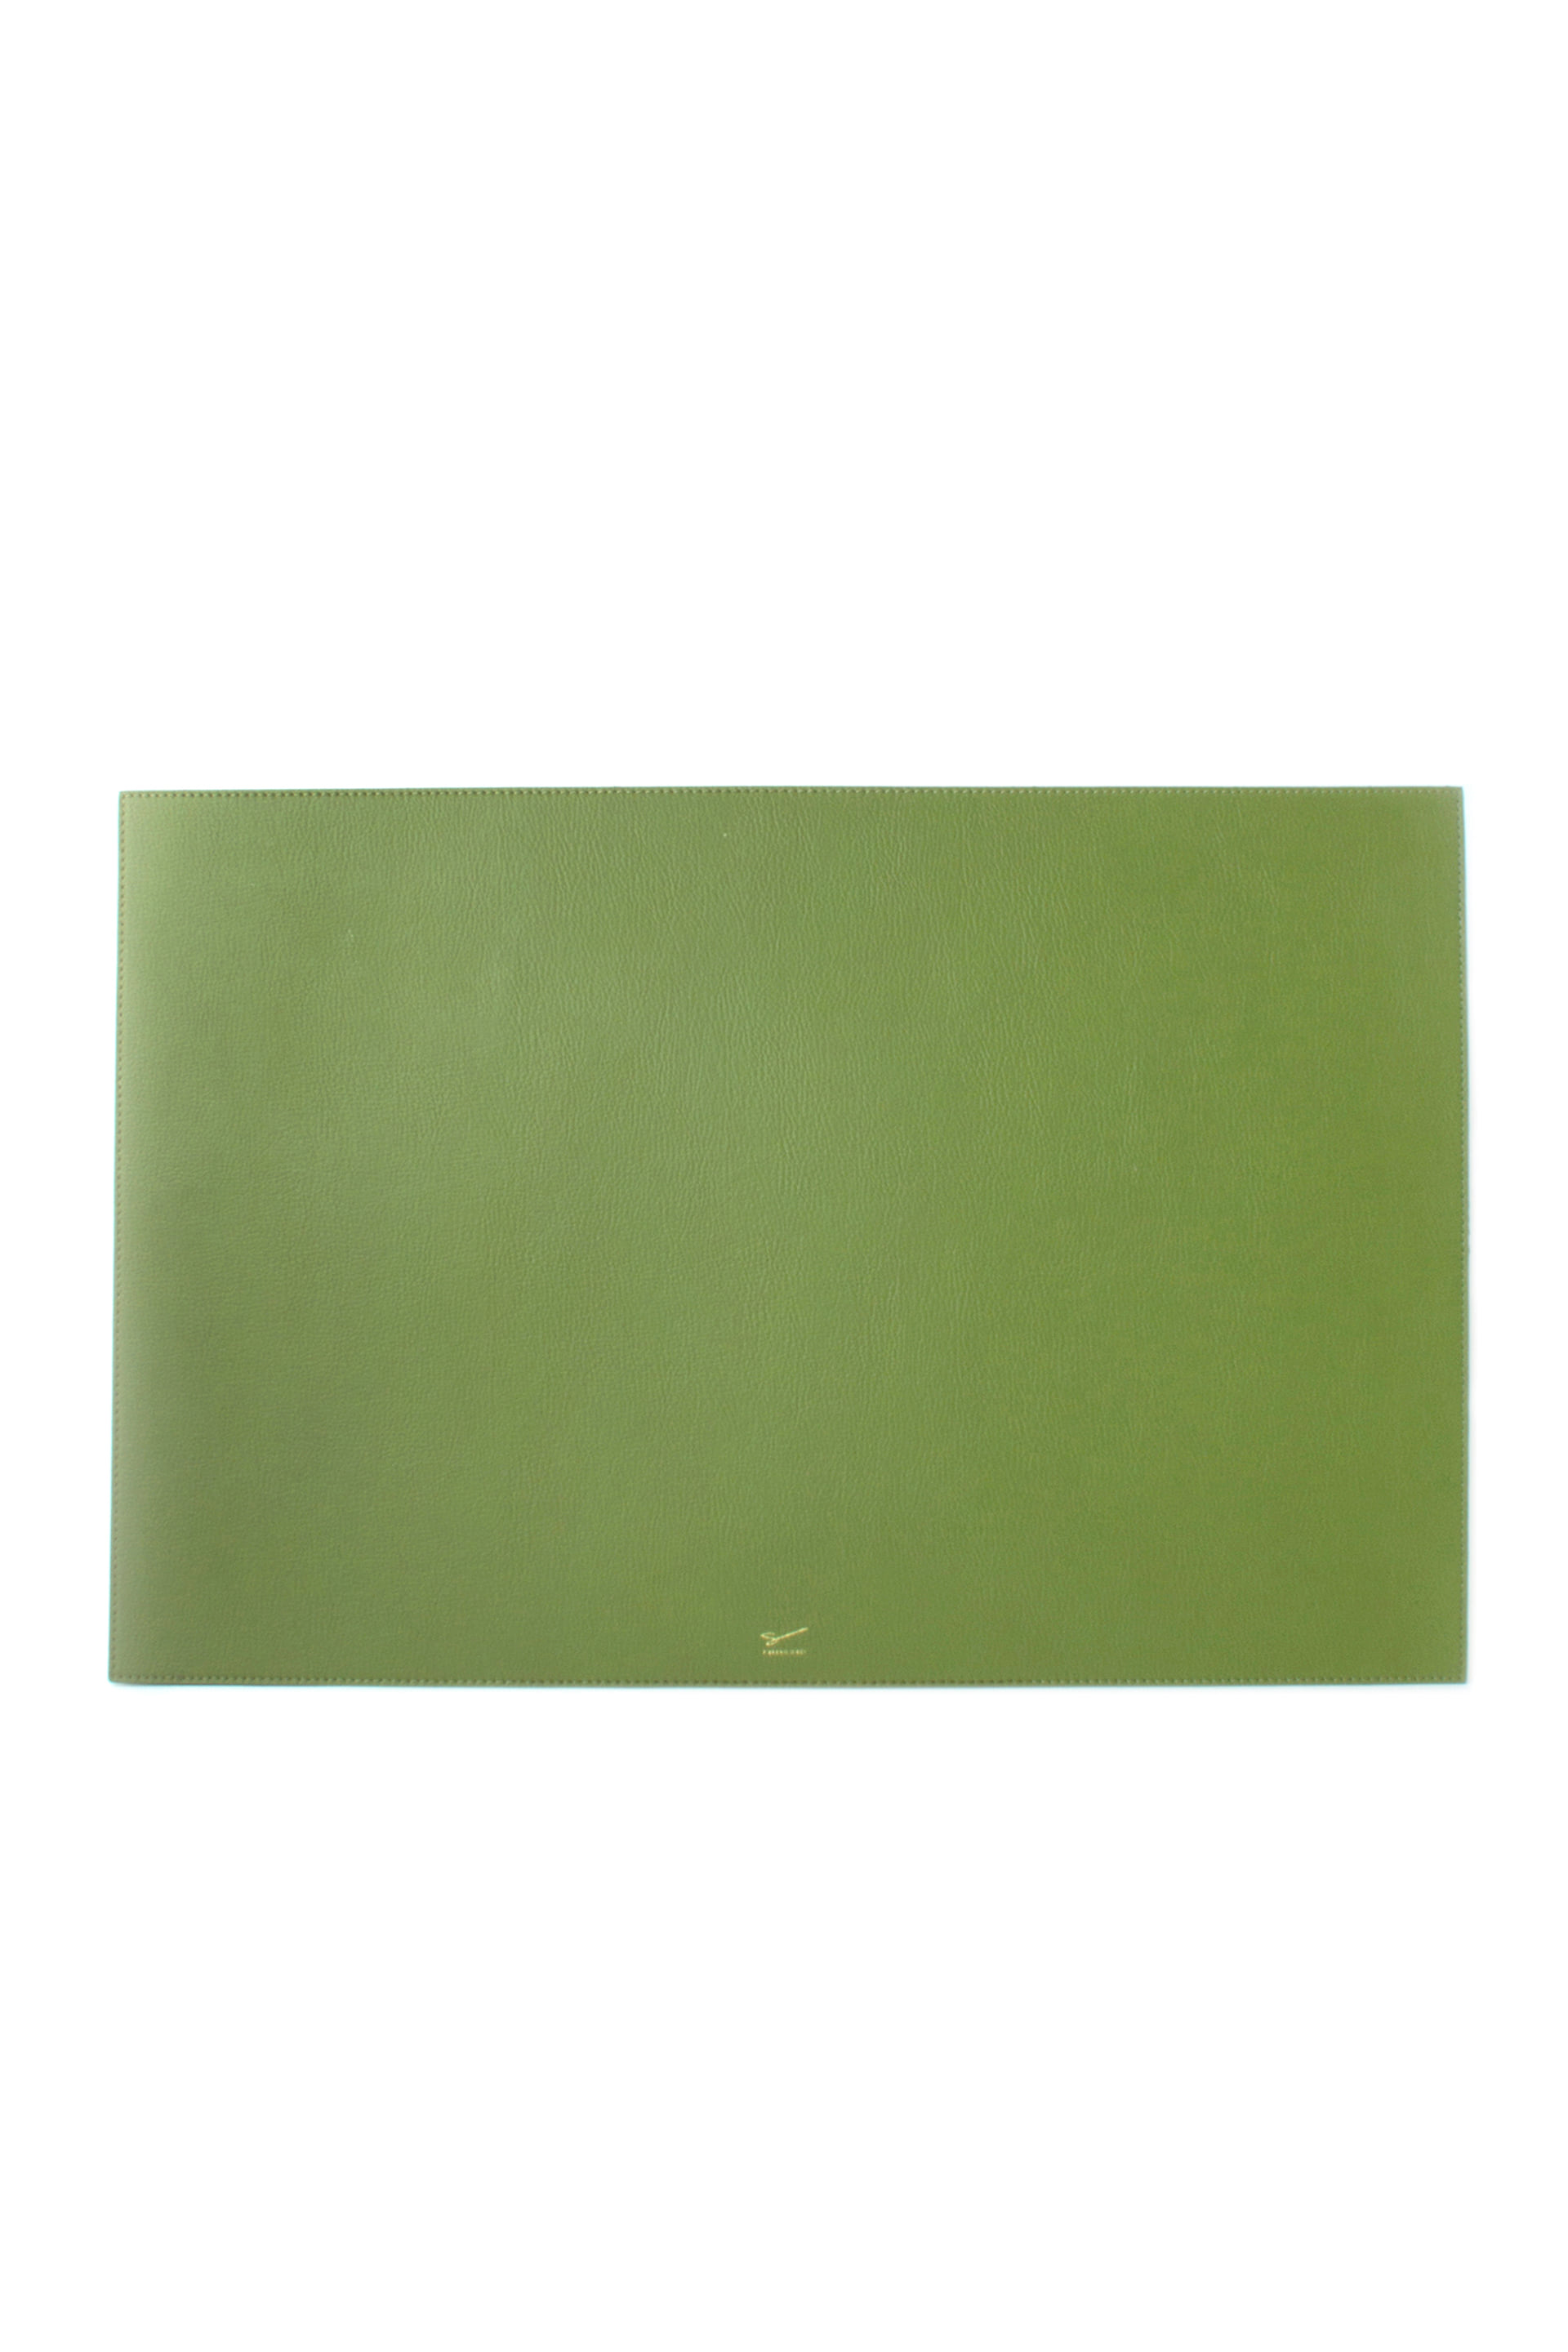 DESK PAD 10 Deep Olive